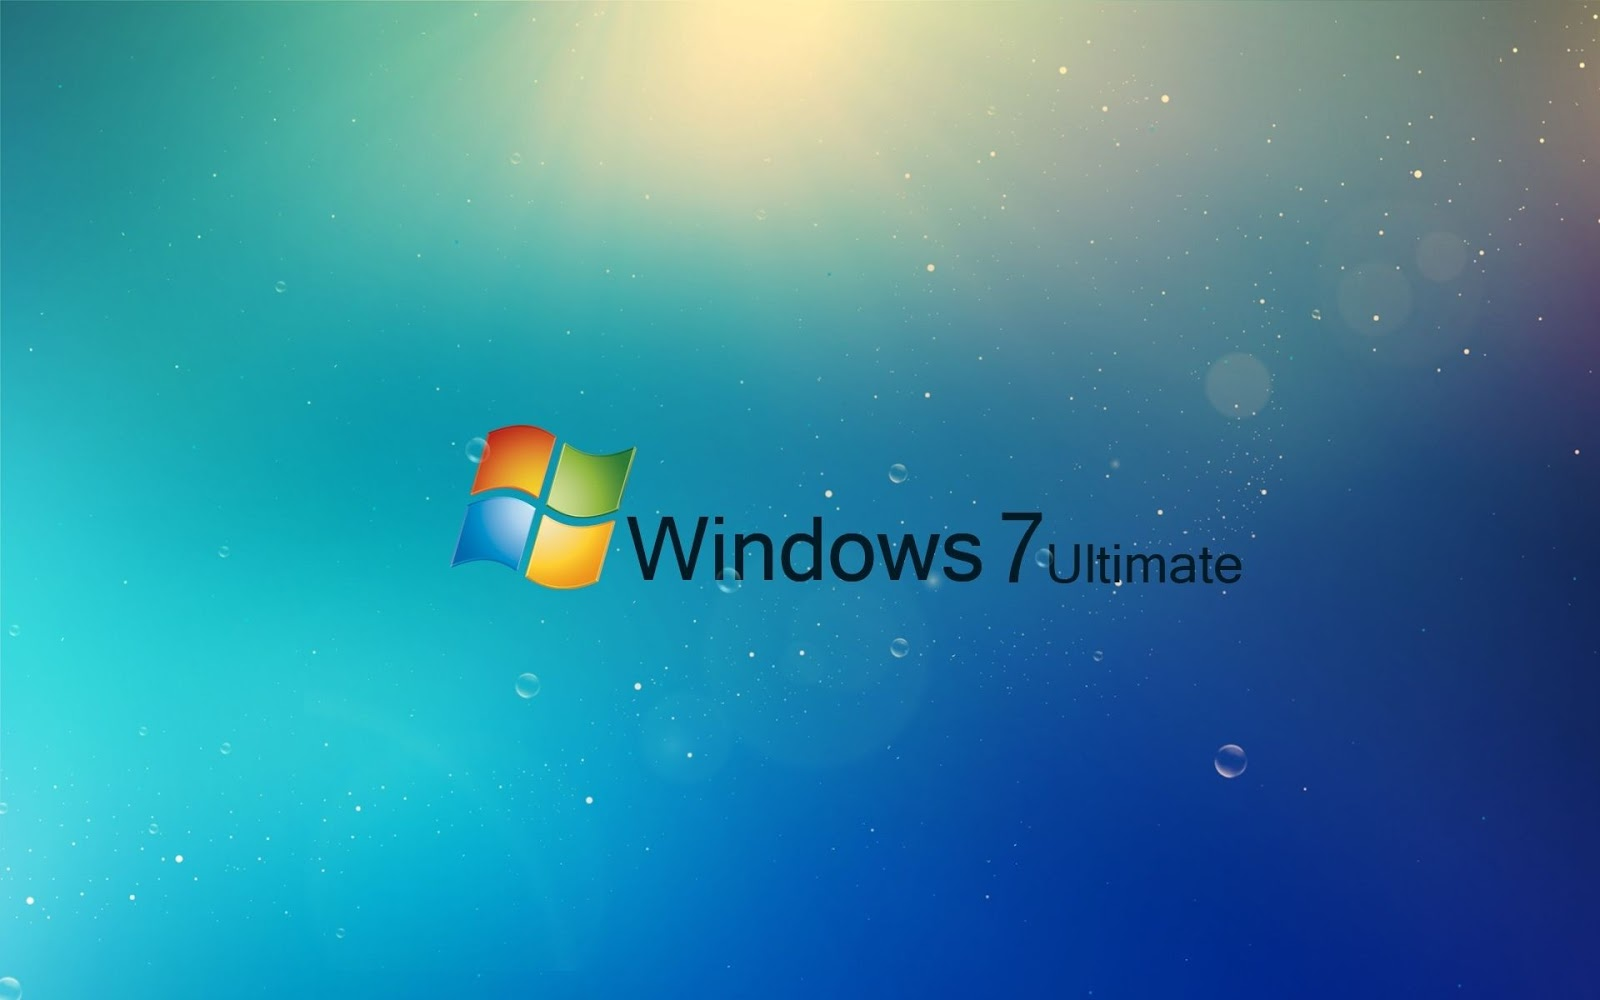 Download windows 7 ultimate 64-bit alchemist free all pc world.